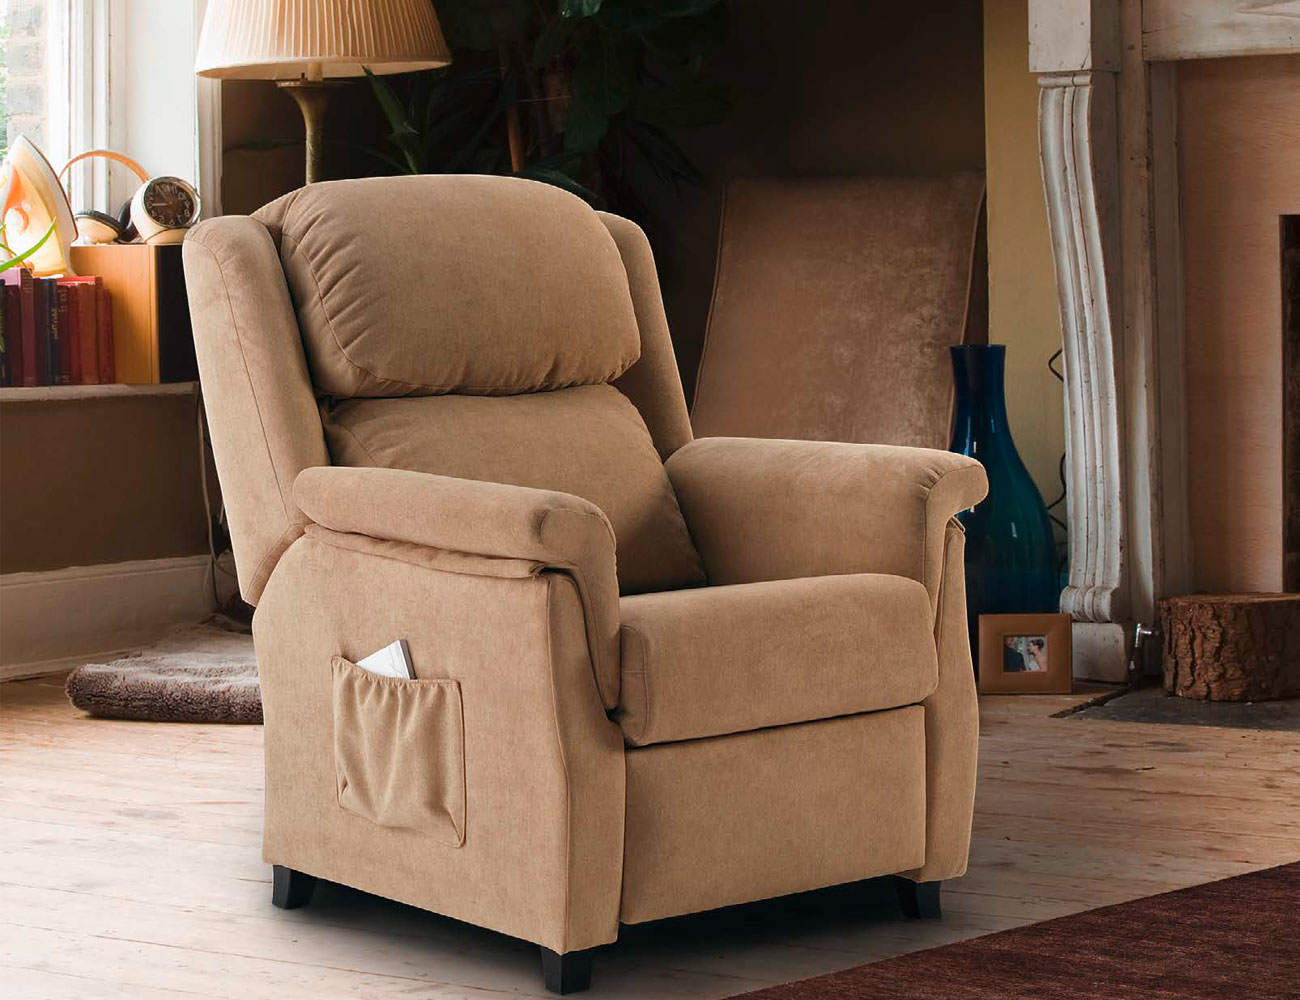 Sillon relax manual bianca 19